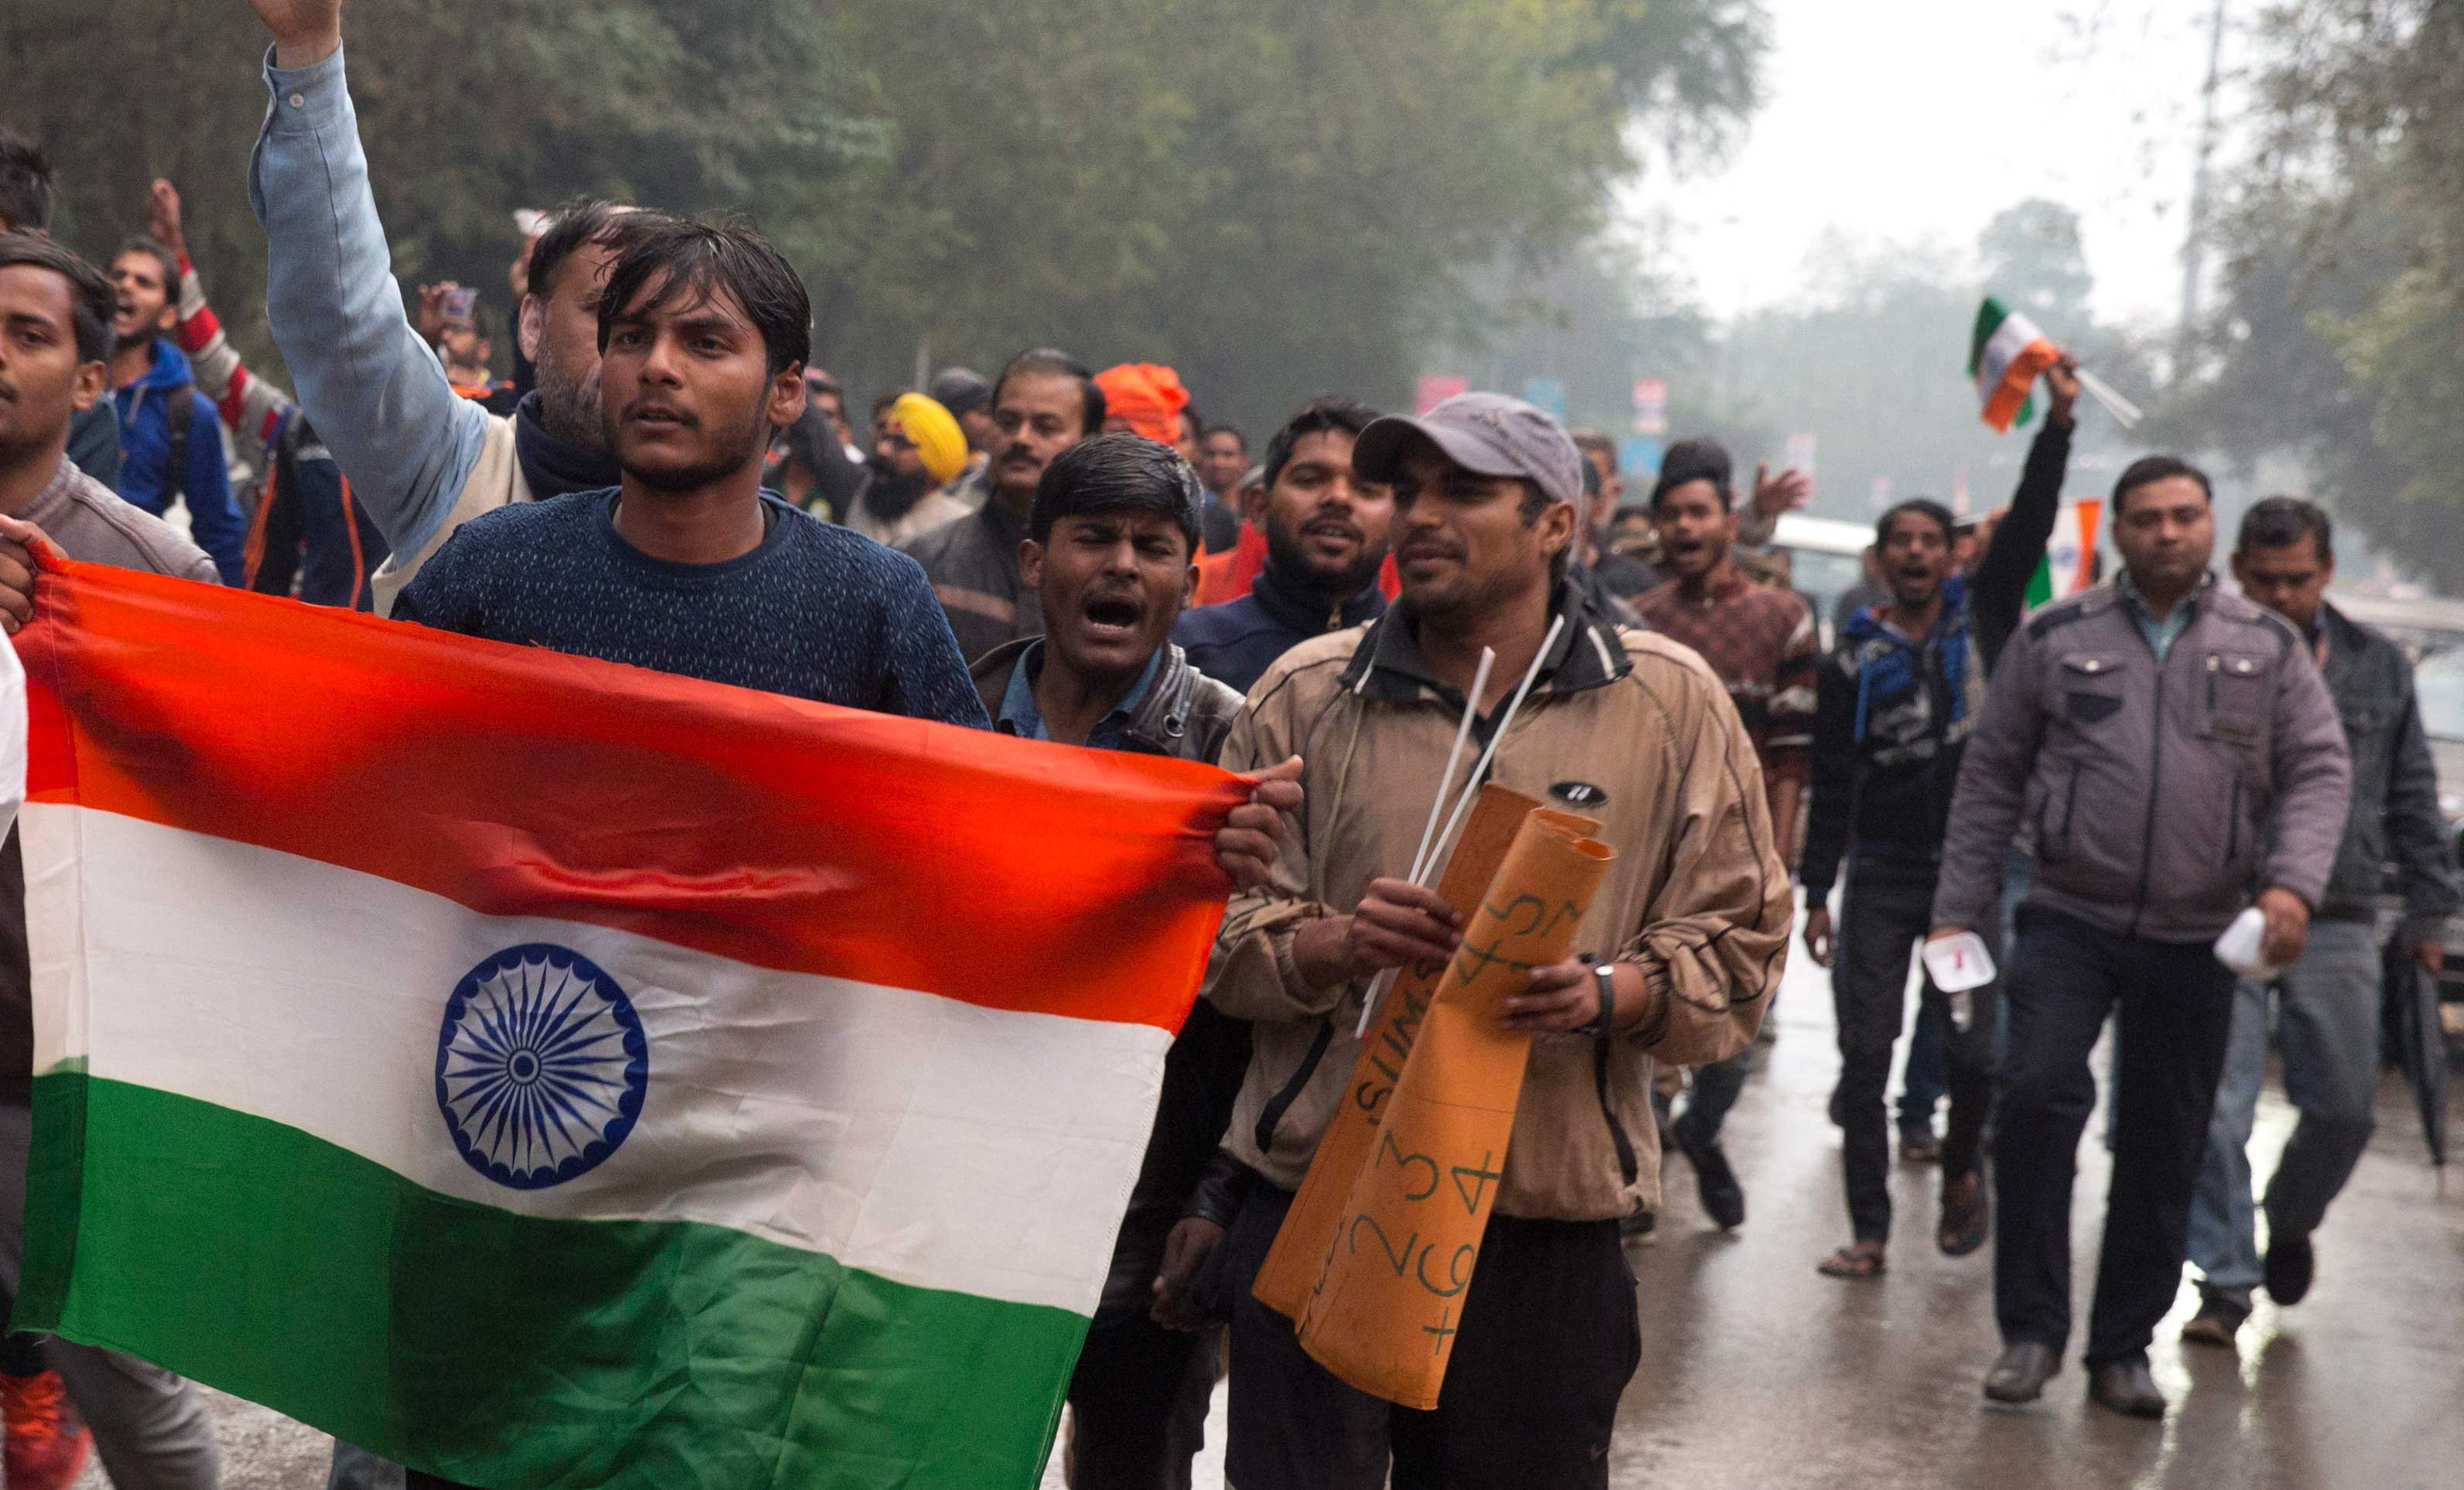 Protestors shout slogans against Thursday's attack on Indian soldiers, in Allahabad, on Friday.